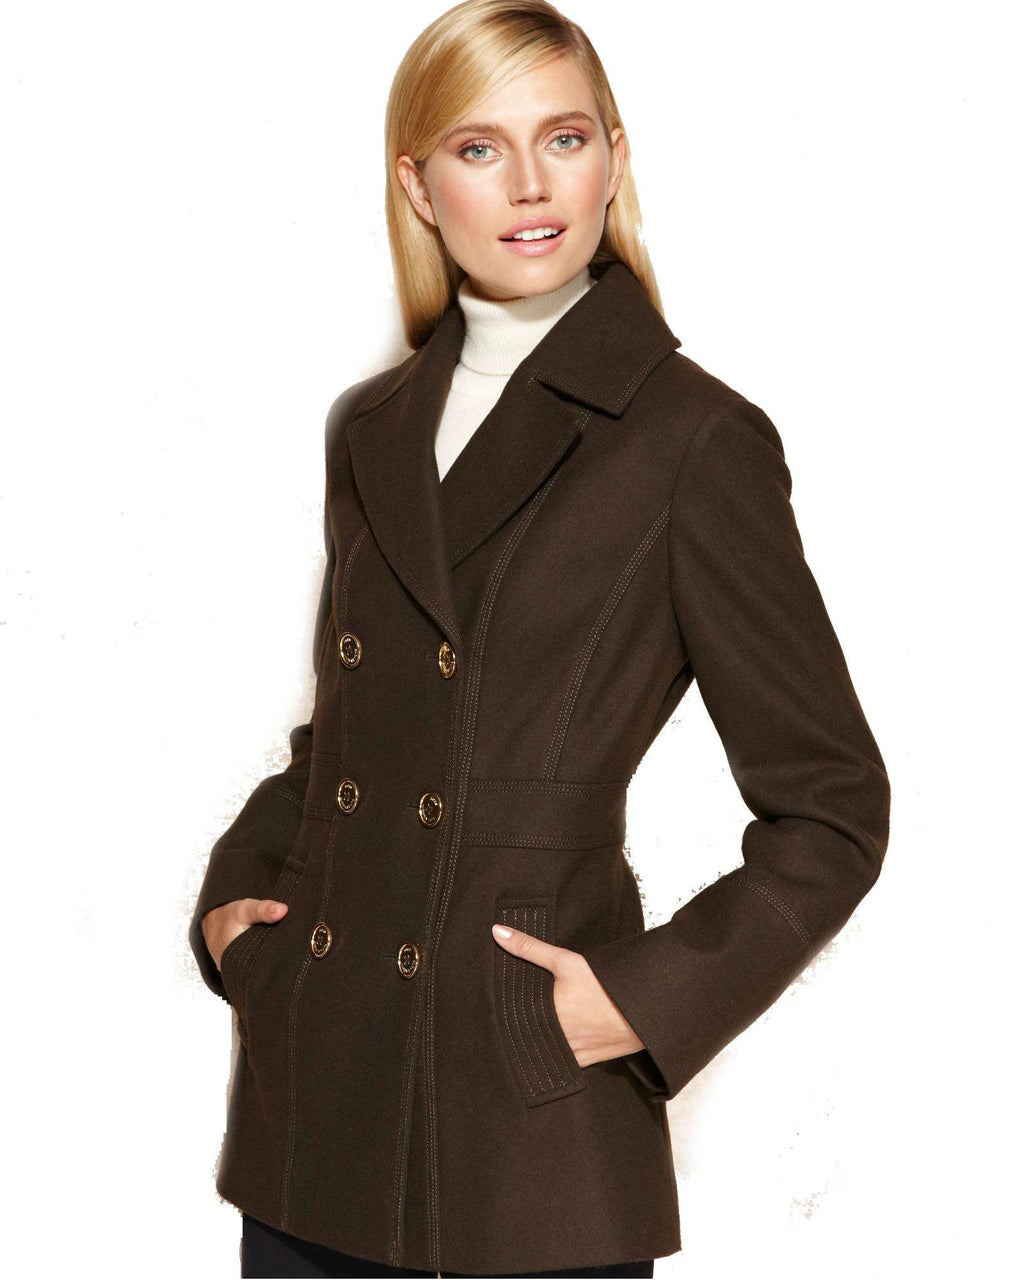 MICHAEL Michael Kors Double-Breasted Wool-Blend Pea Coat-MICHAEL MICHAEL KORS-Fashionbarn shop